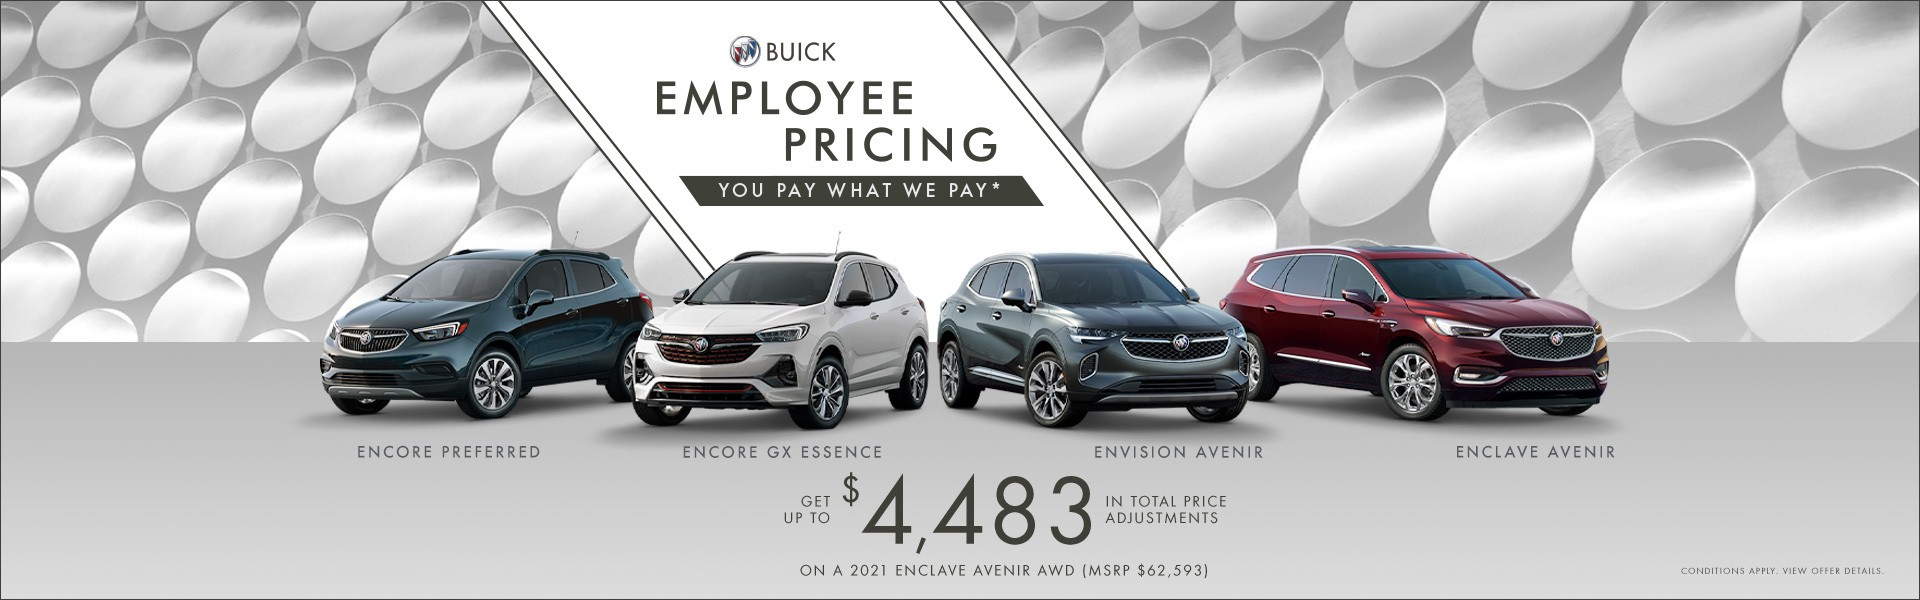 Buick Employee Pricing Specials Offers Incentives Jack Carter Northstar GM Cranbrook BC